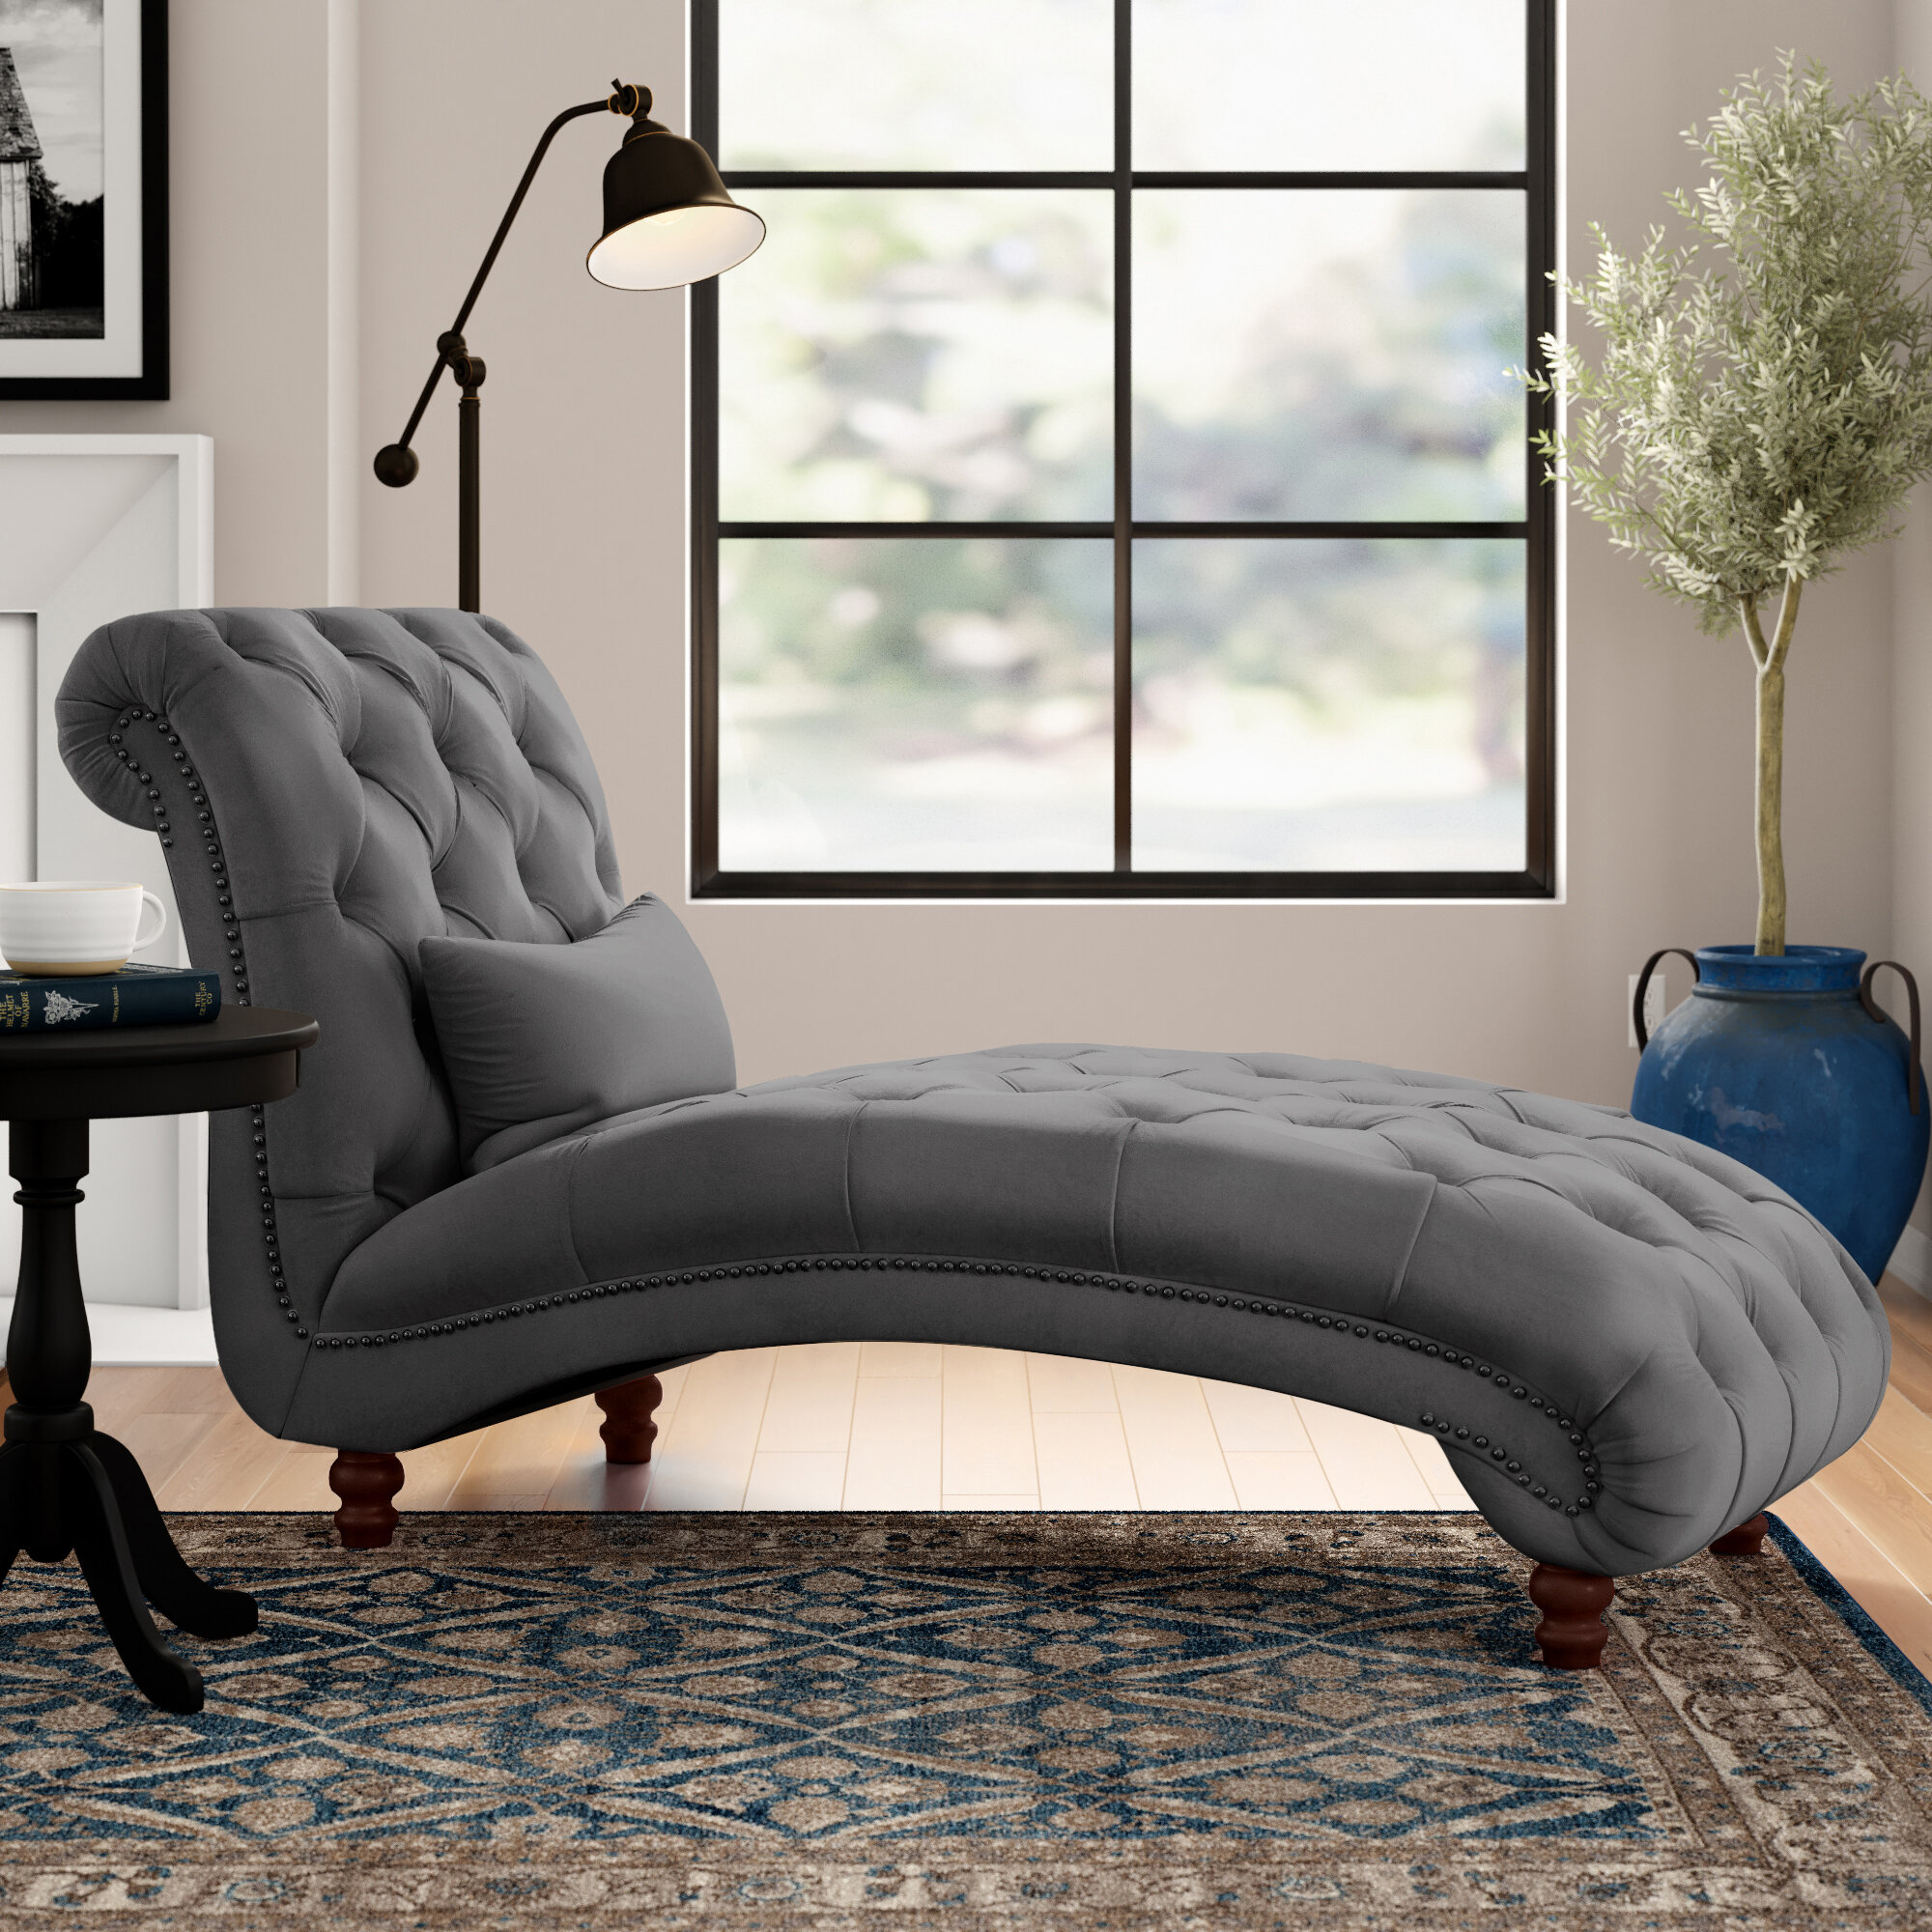 Velvet Chaise Lounge Chairs You Ll Love In 2021 Wayfair